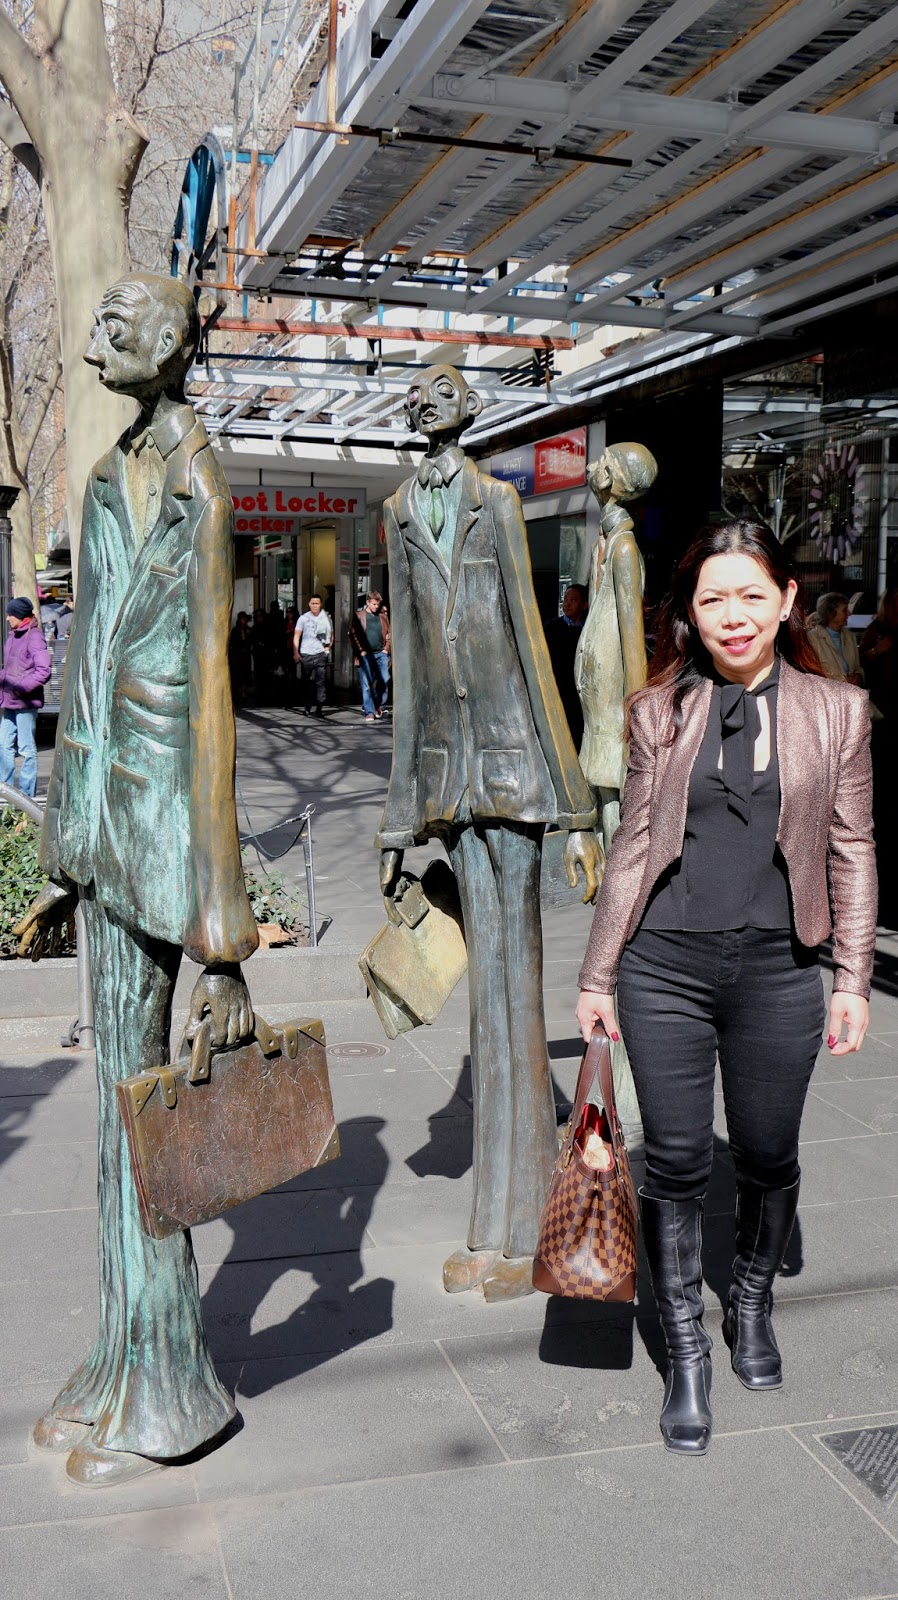 Melbourne Bronze sculptures